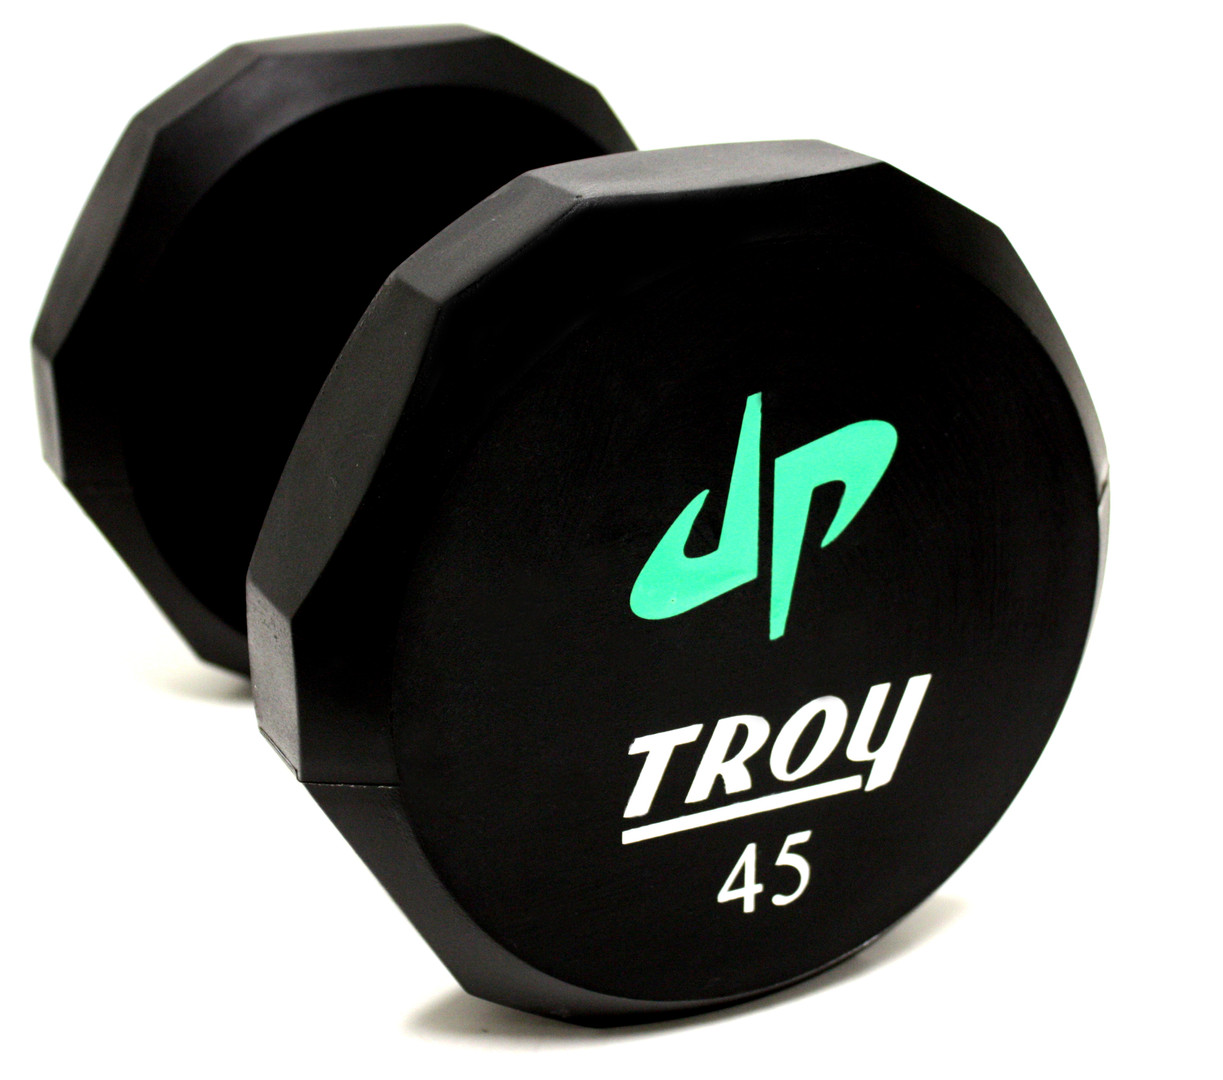 TSD-UL Troy 12-Sided Urethene Custom Logo Dumbbell